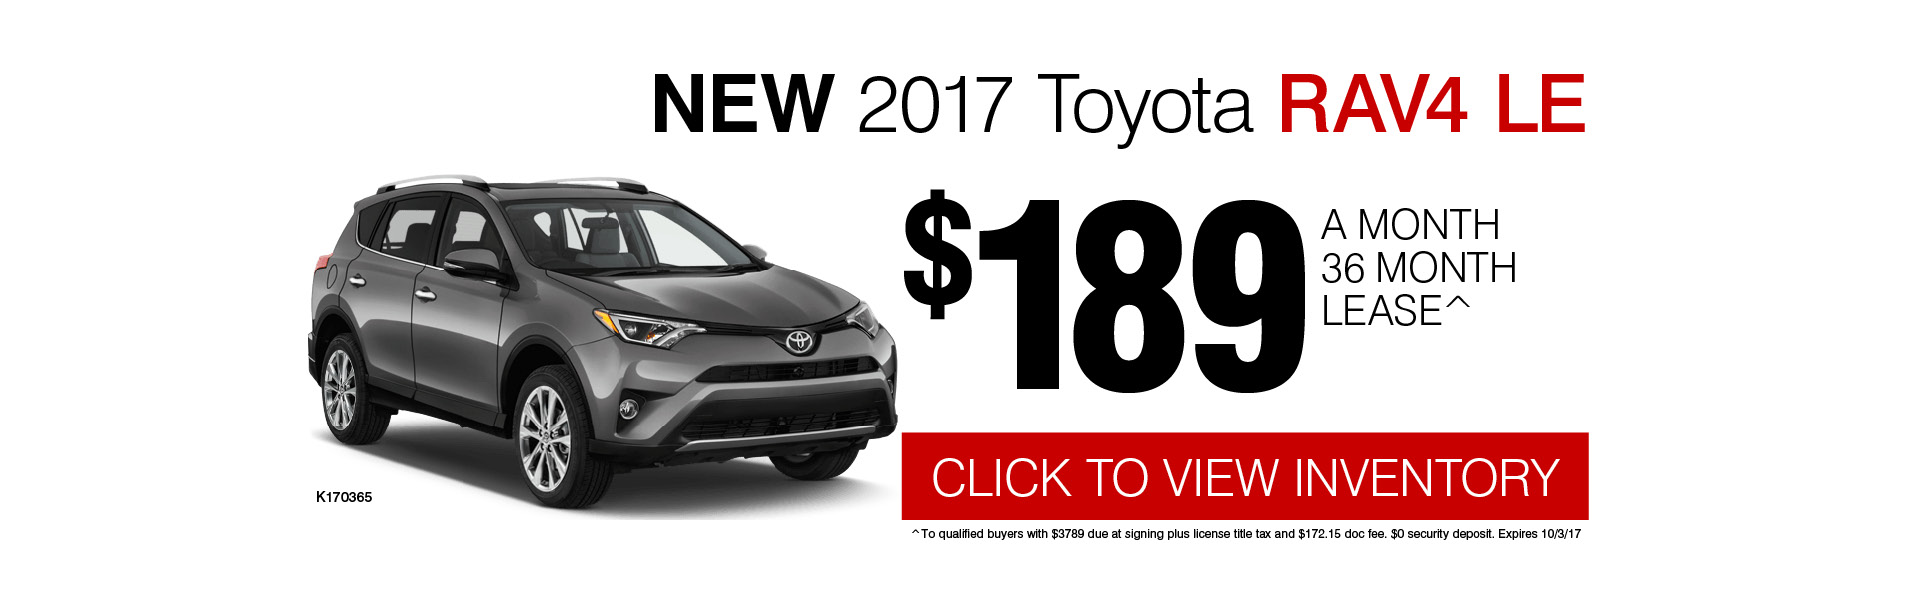 2017 Toyota RAV4 LE Lease Special in Chicago, IL